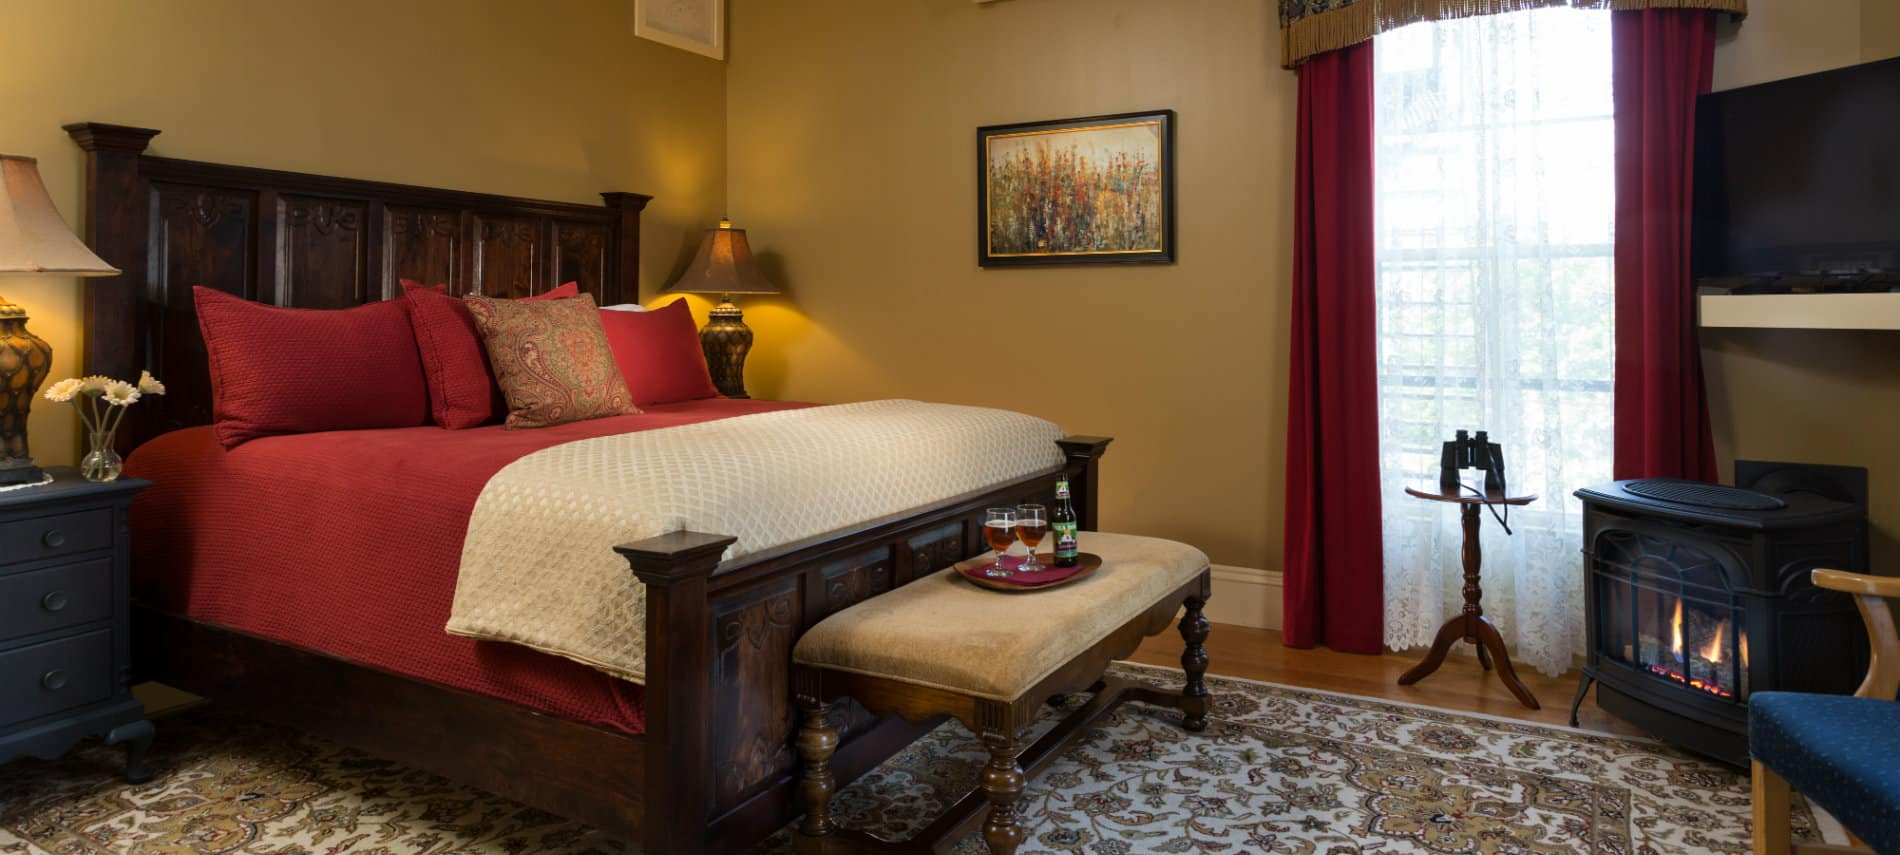 Guest room with tan walls and a large wooden bedstead and a standalone fireplace.